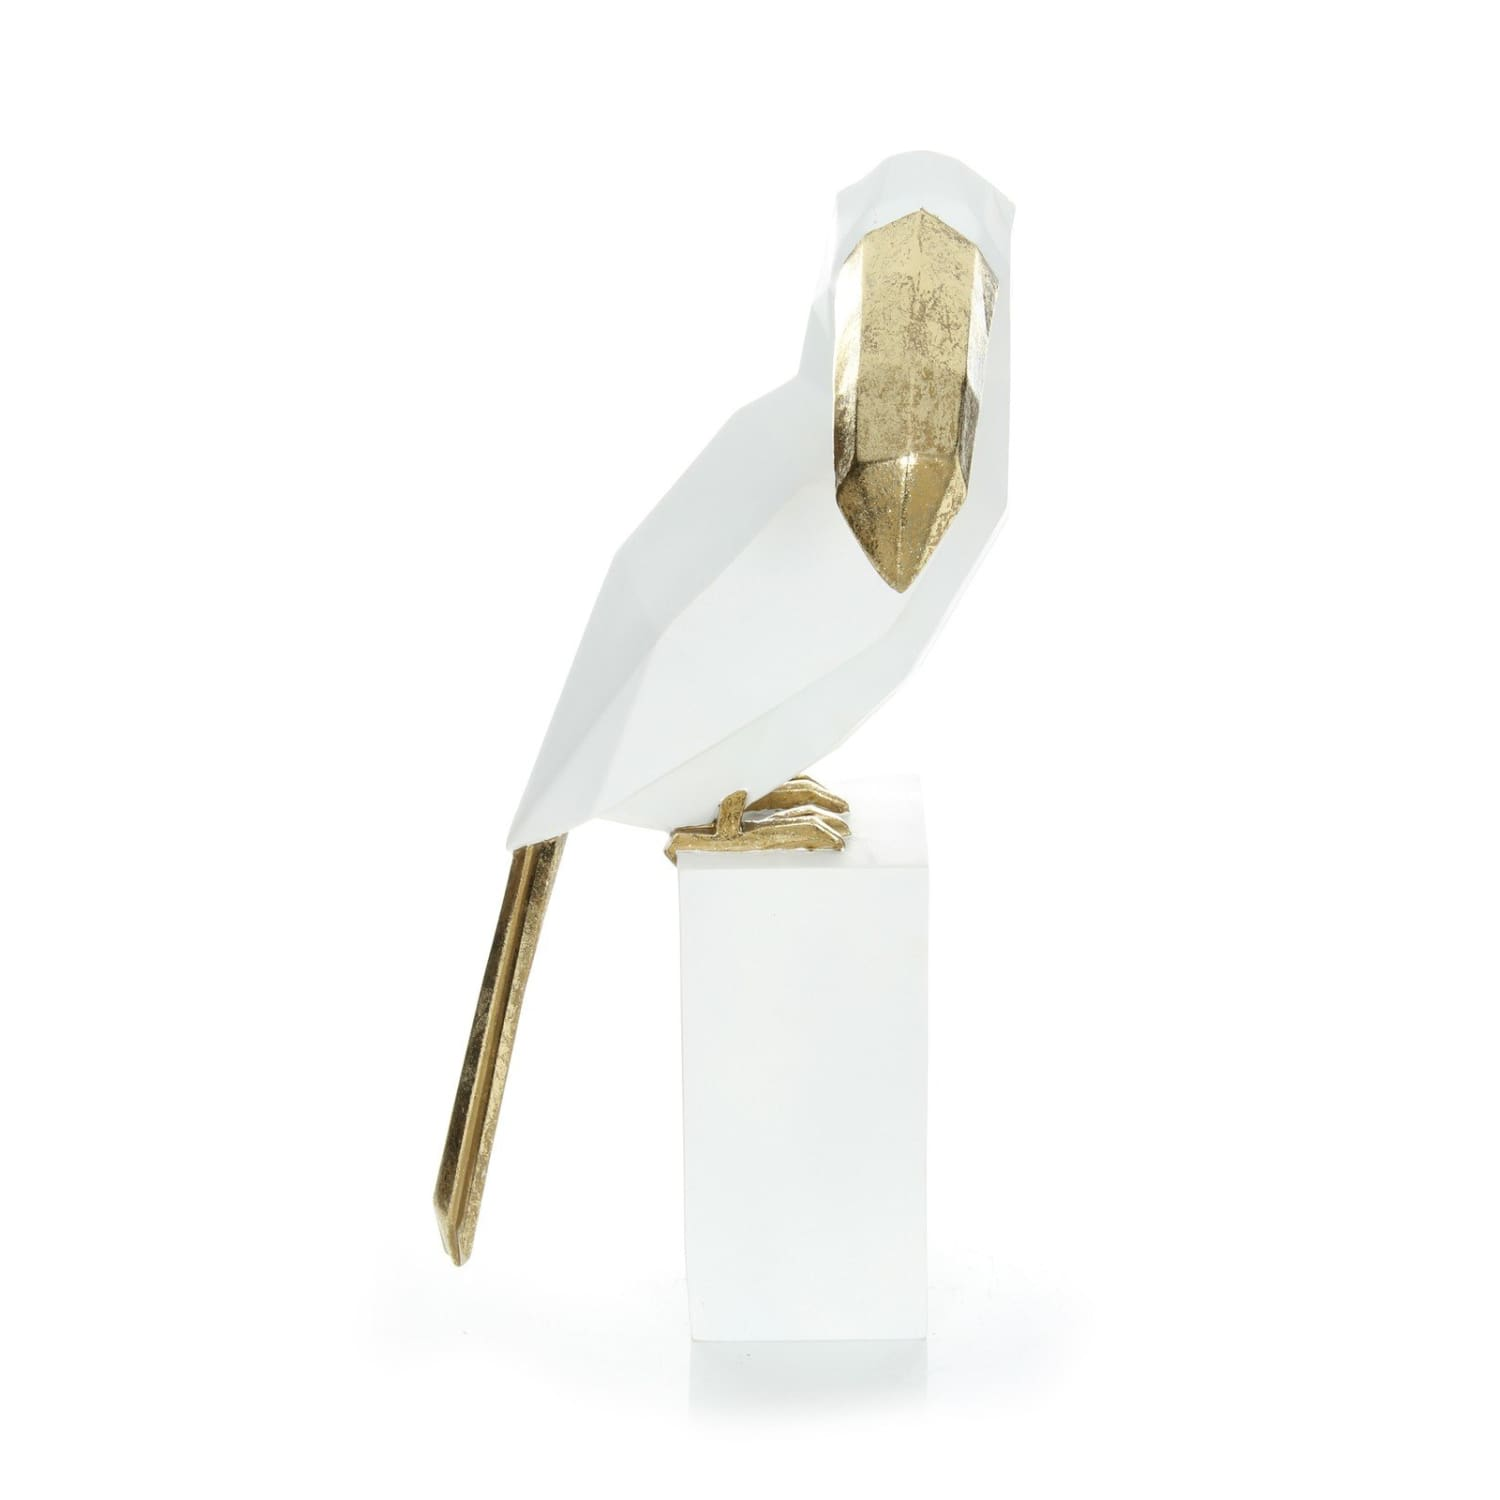 Décoration Sculpture - Toucan 110 Blanc